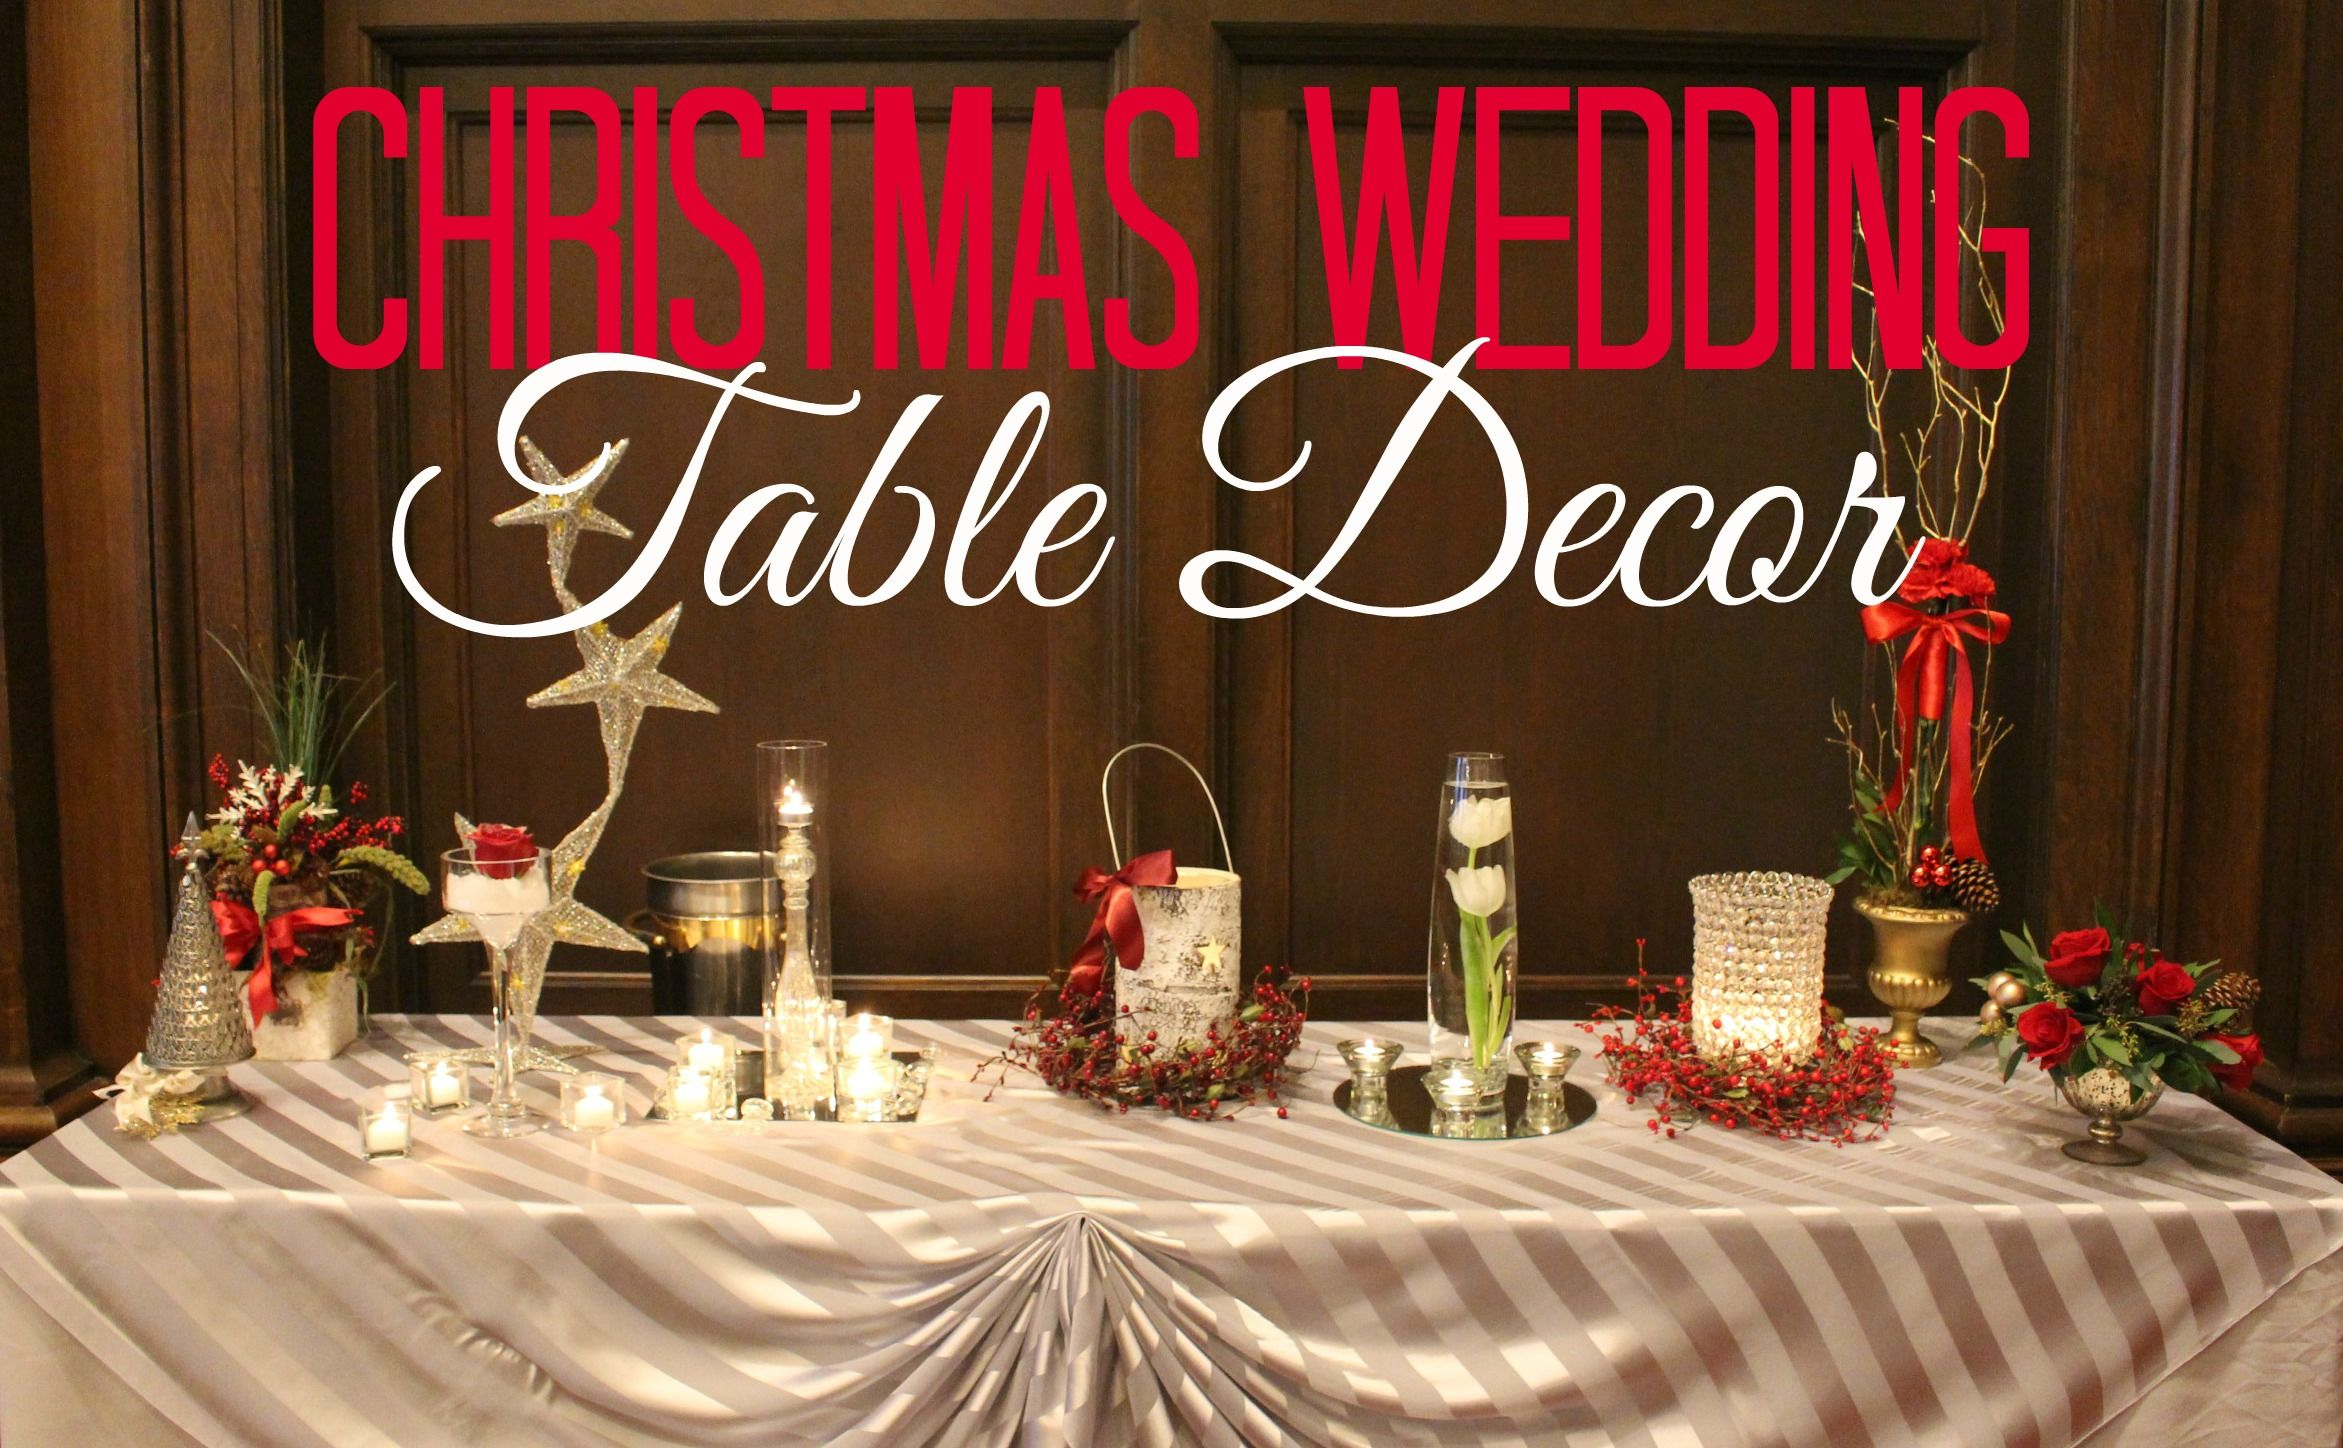 Christmas Wedding Table Decor